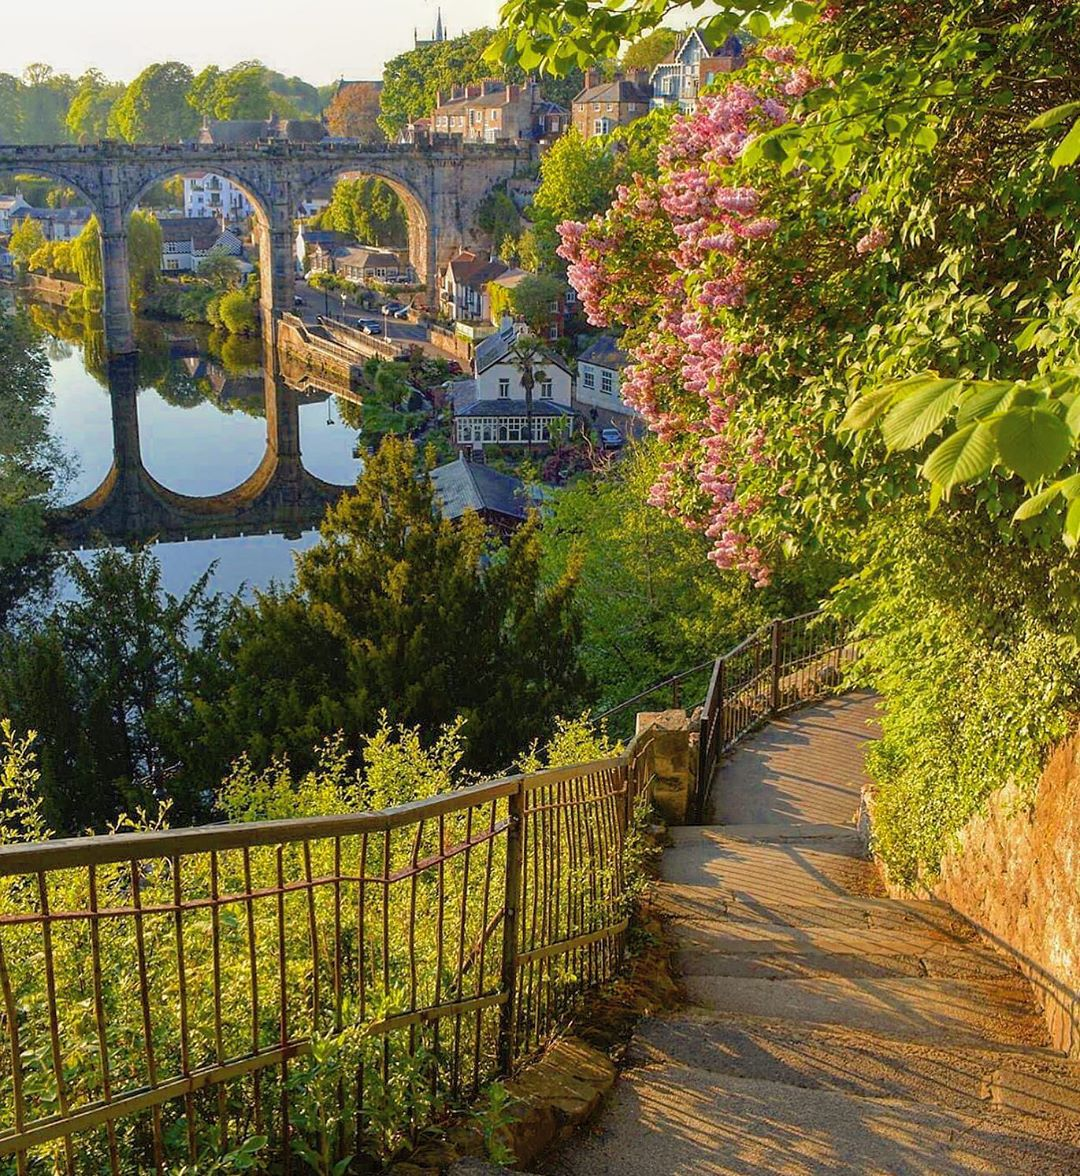 """Knaresborough Viaduct """"added a double beauty to the scene"""" - J.B. Priestley ❤️  The Viaduct over the River Nidd opened in 1851 and care was taken in its design so that it complemented the local area and nearby castle that overlooks the river.   📸: IG / from_yorkshire_and_back https://t.co/Ybb6nVr5tI"""